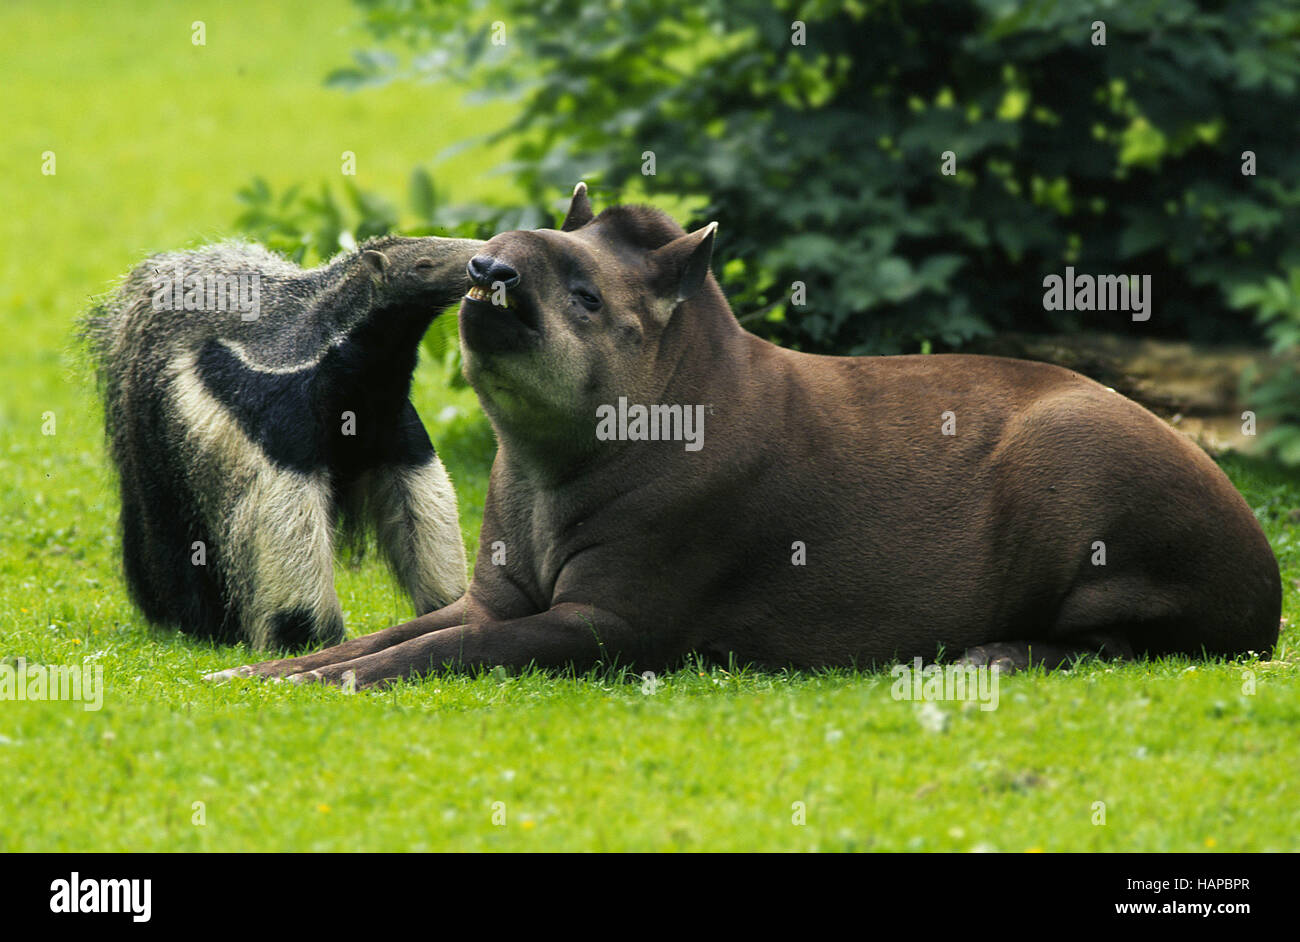 Giant Anteater and Southamerican Tapir Stock Photo